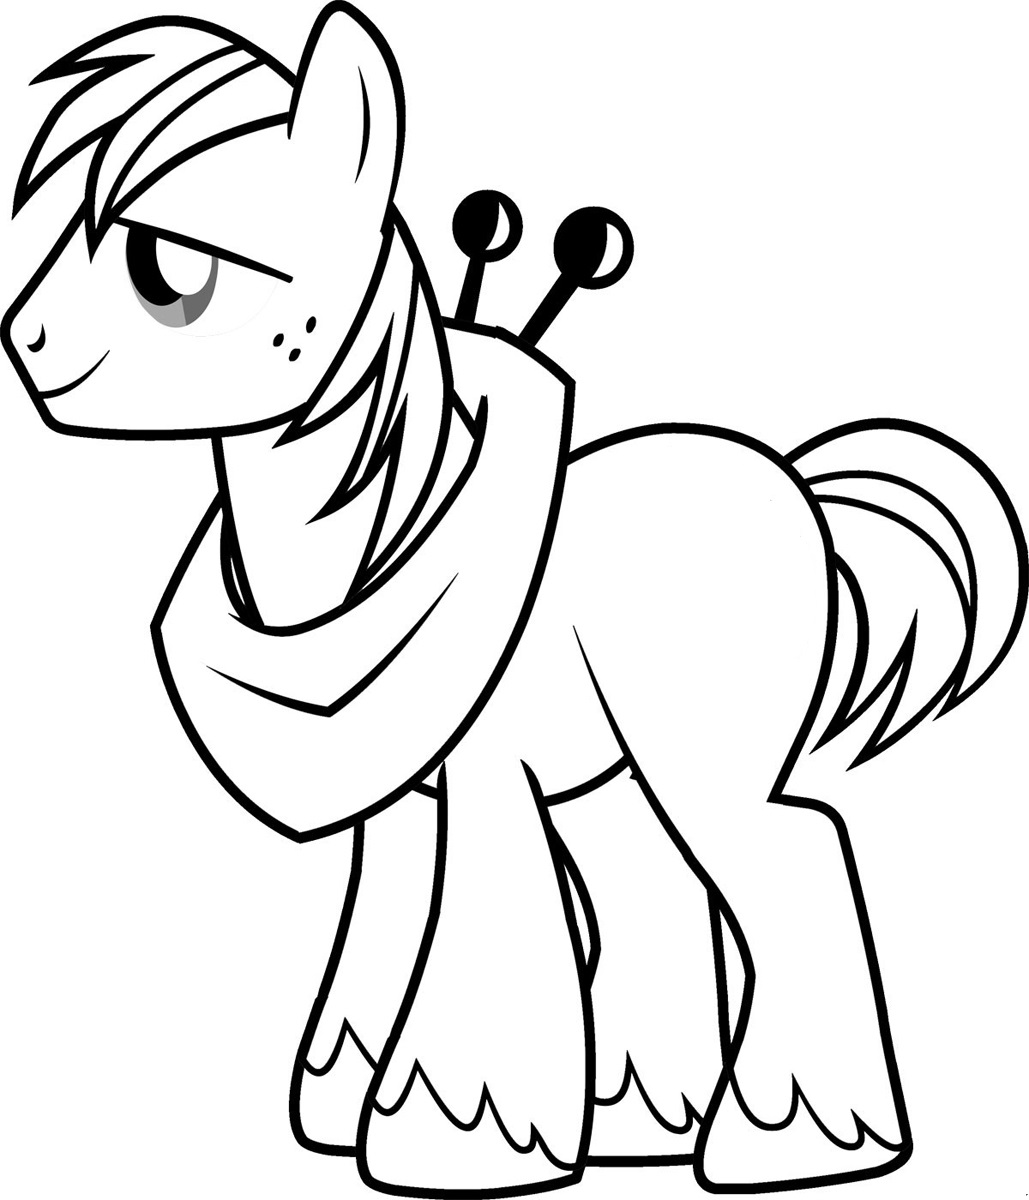 free m&m coloring pages | Ponies from Ponyville coloring pages, free printable ...